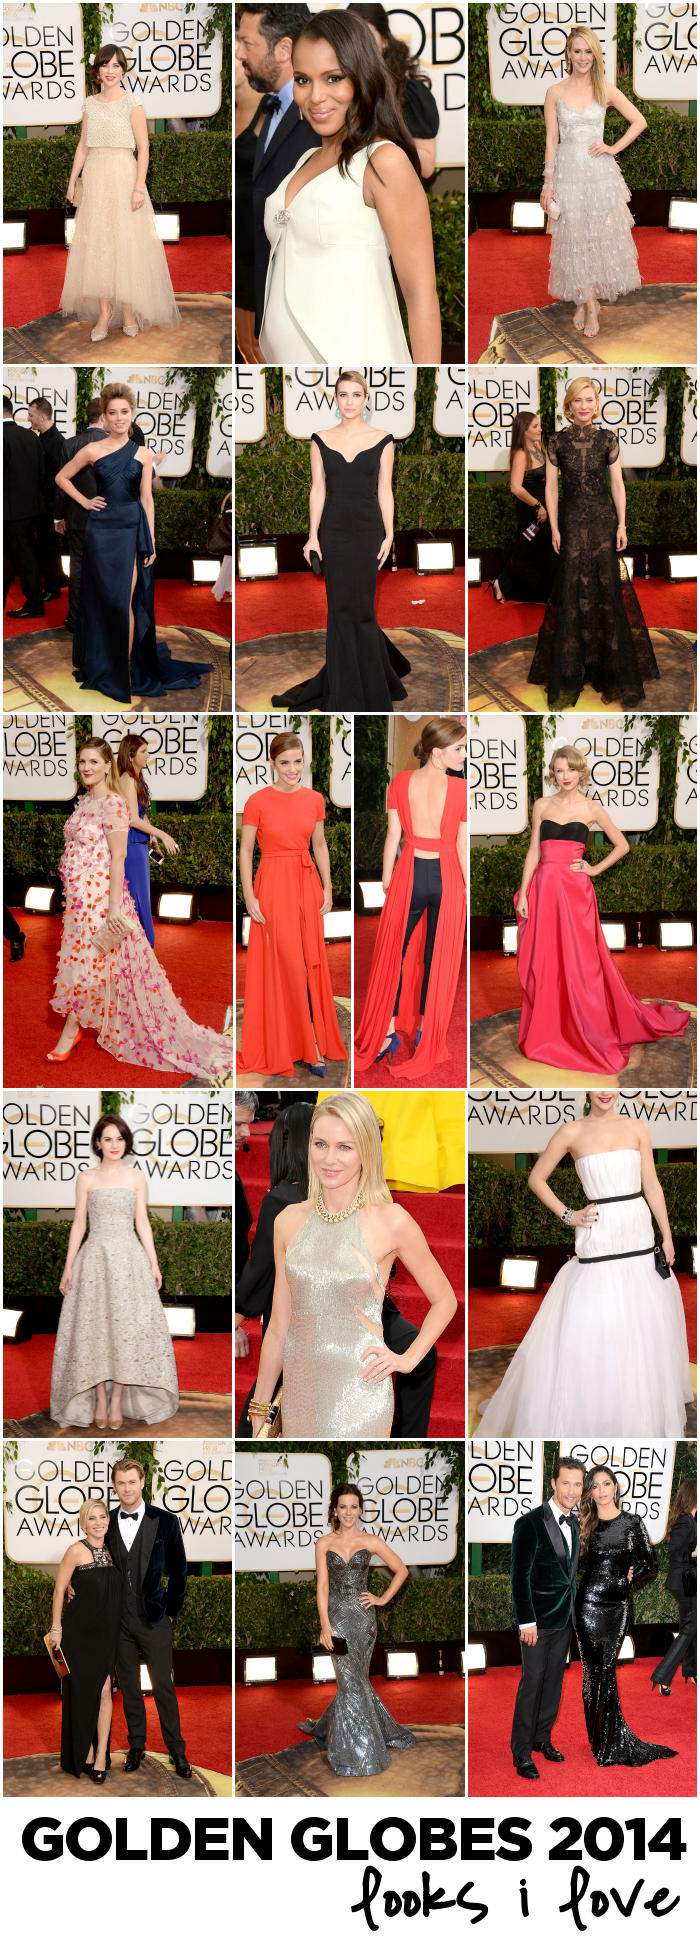 Golden Globes 2014 I LOVE IT collage